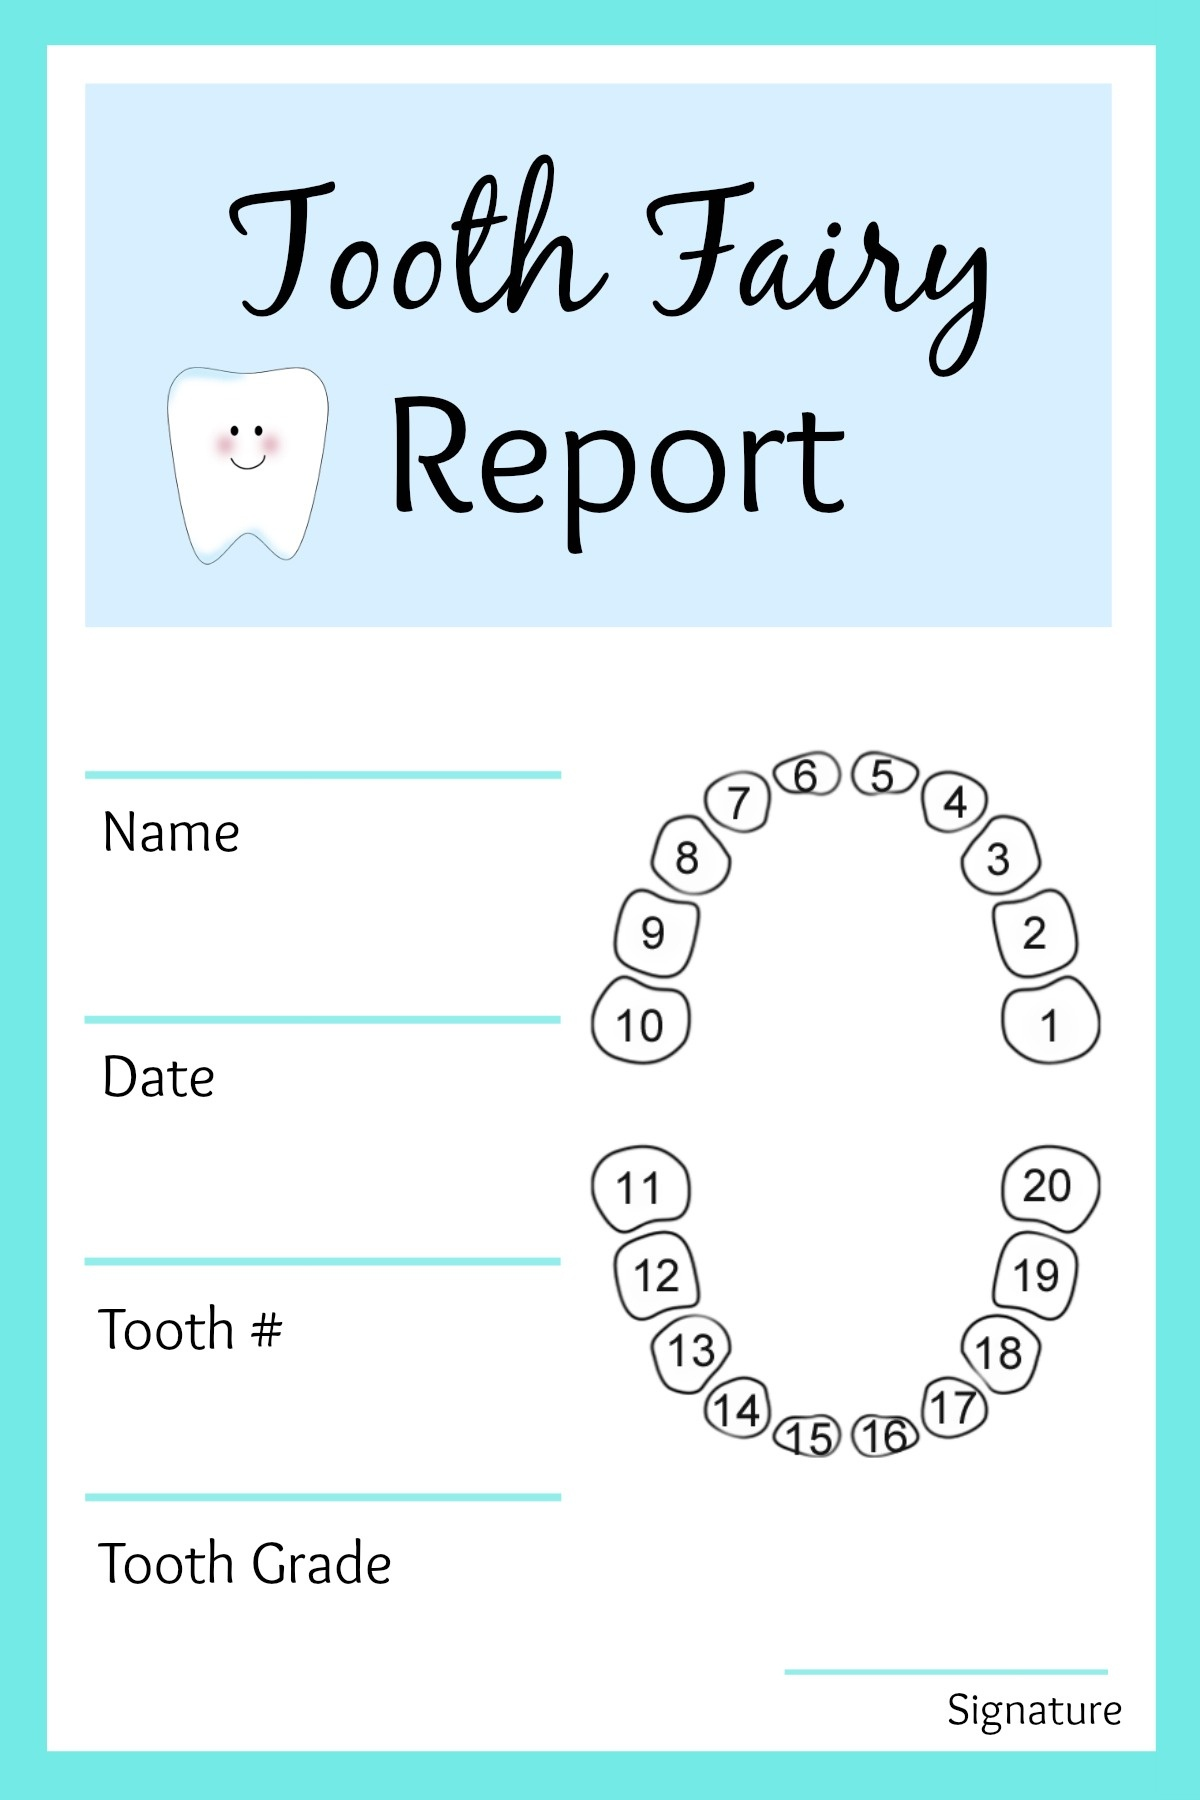 Tooth Fairy Ideas And Free Printables: Tooth Fairy Letterhead Report - Tooth Fairy Stationery Free Printable